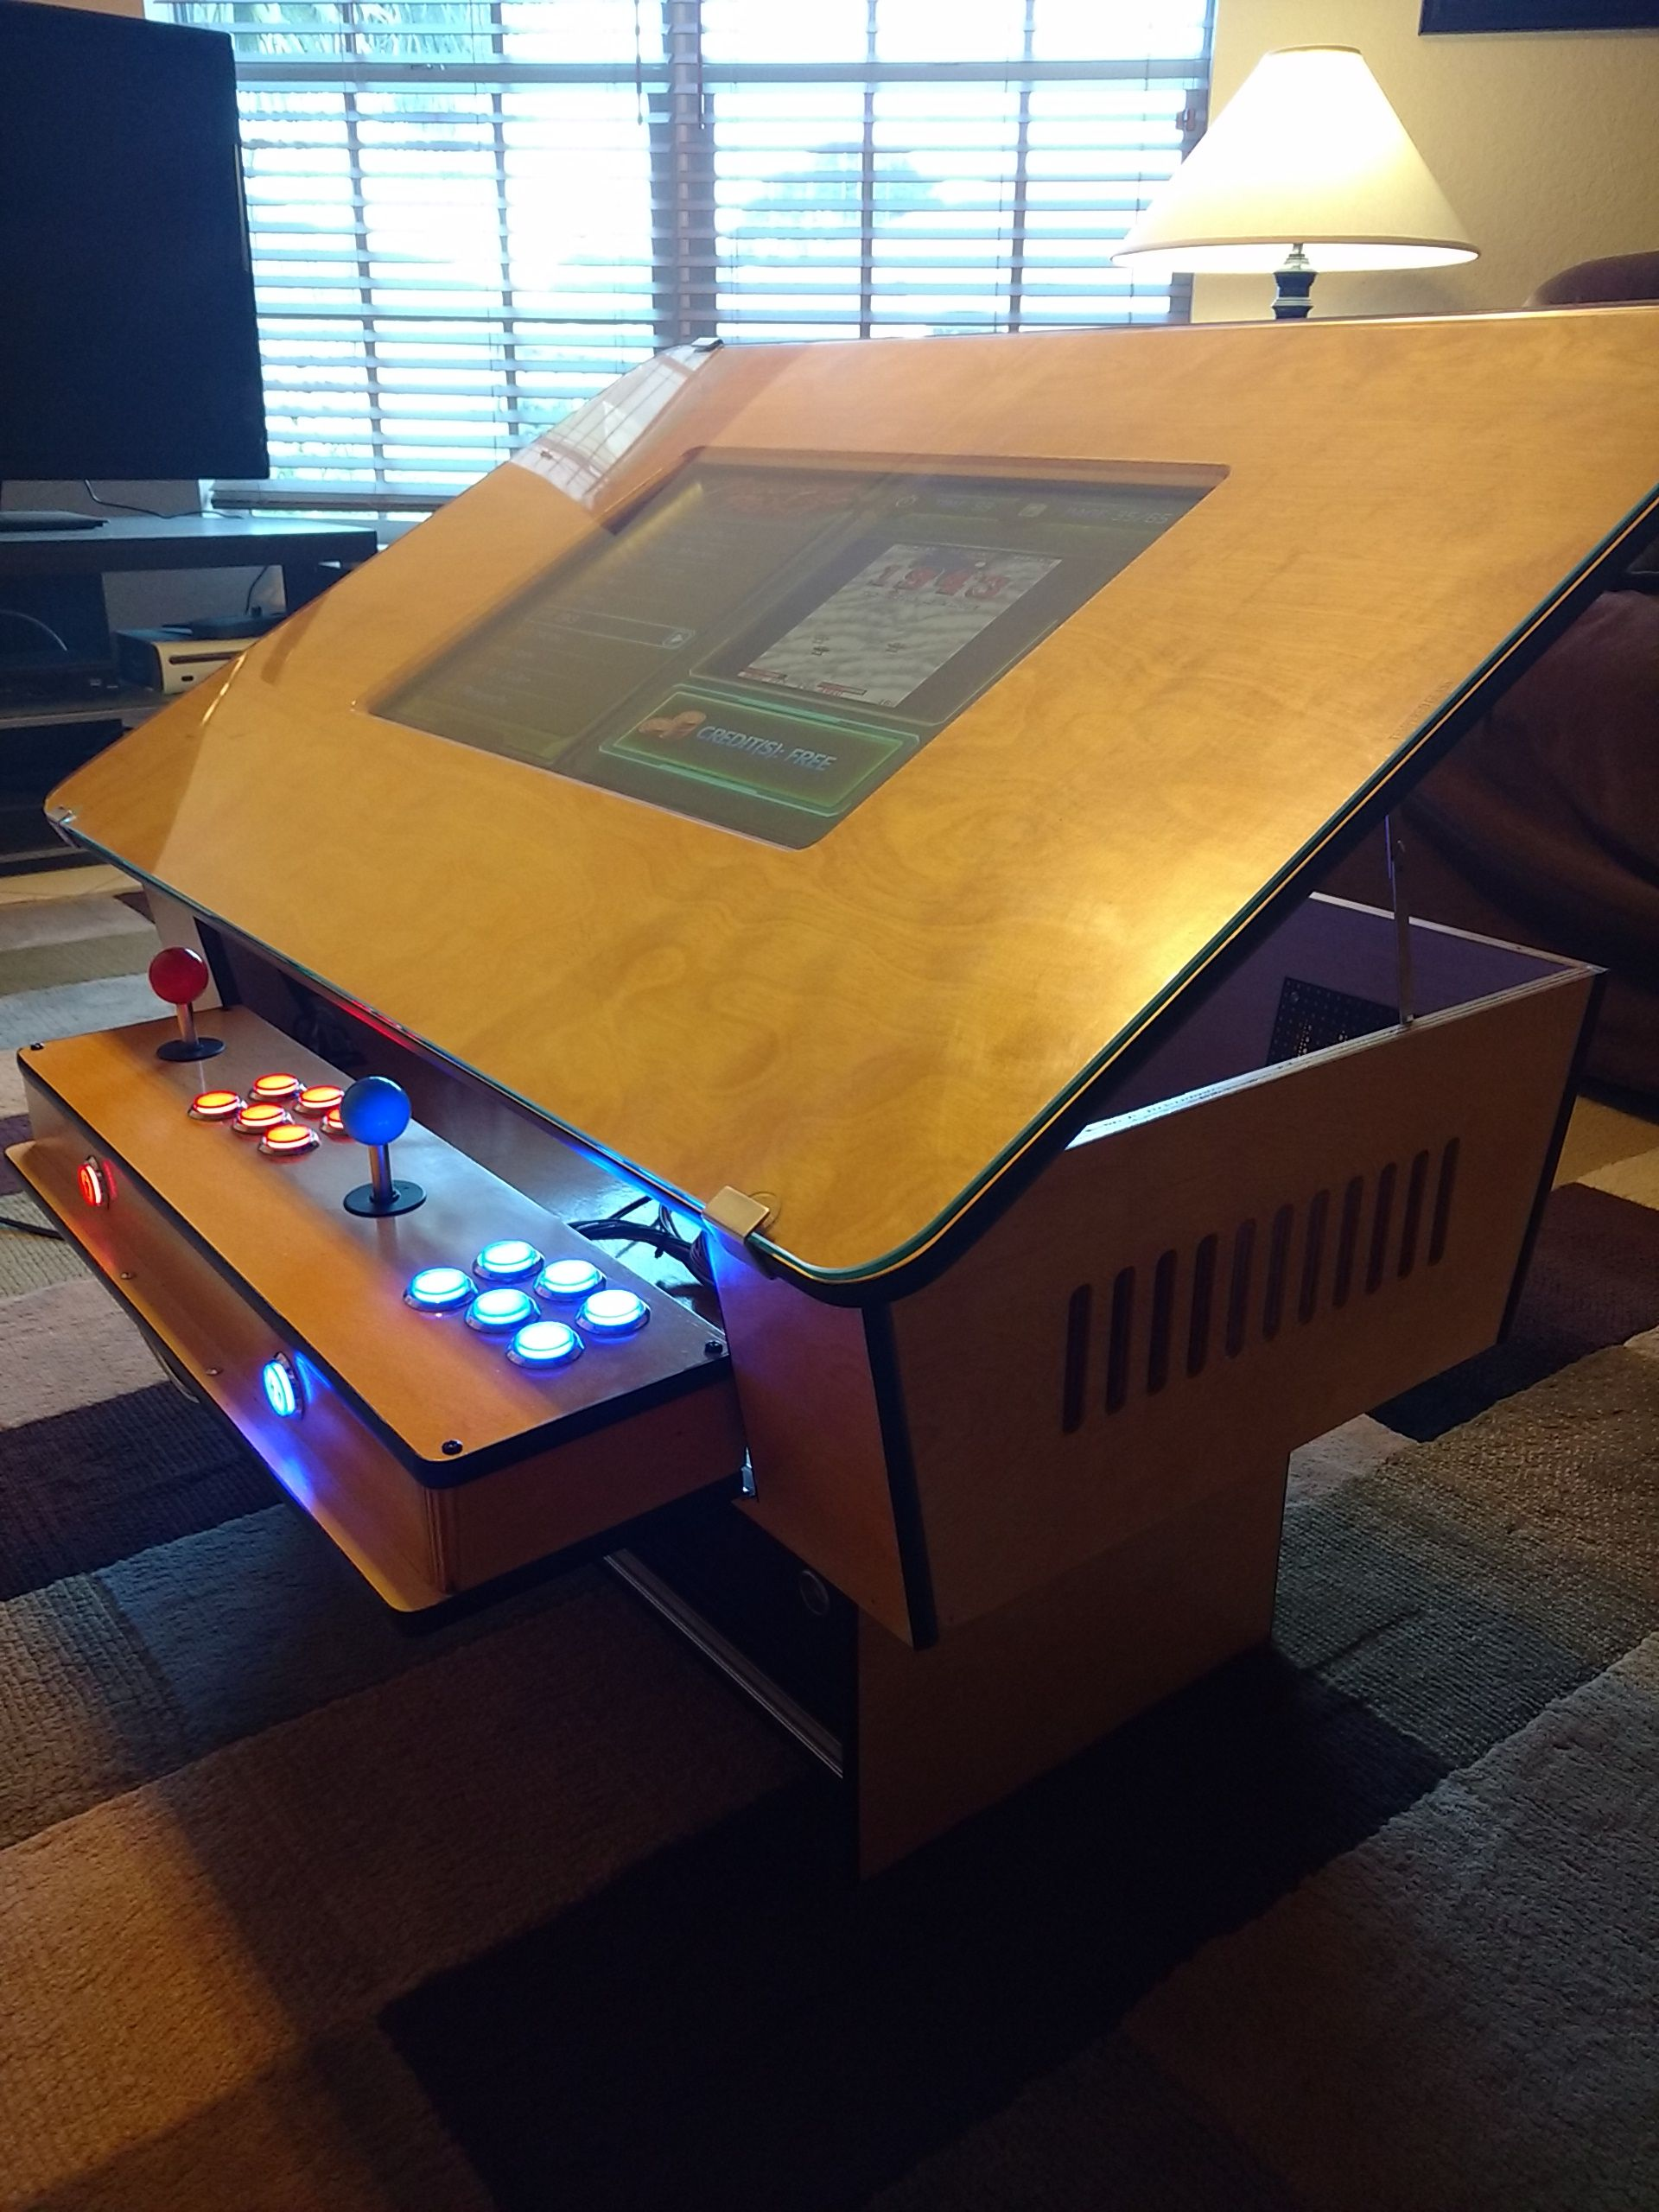 Retro Arcade Game Coffee Table Made By One Of Our Members Great For Any Game Room Man Cave Ultimate D Arcade Table Coffee Table Arcade Cocktail Arcade Machine